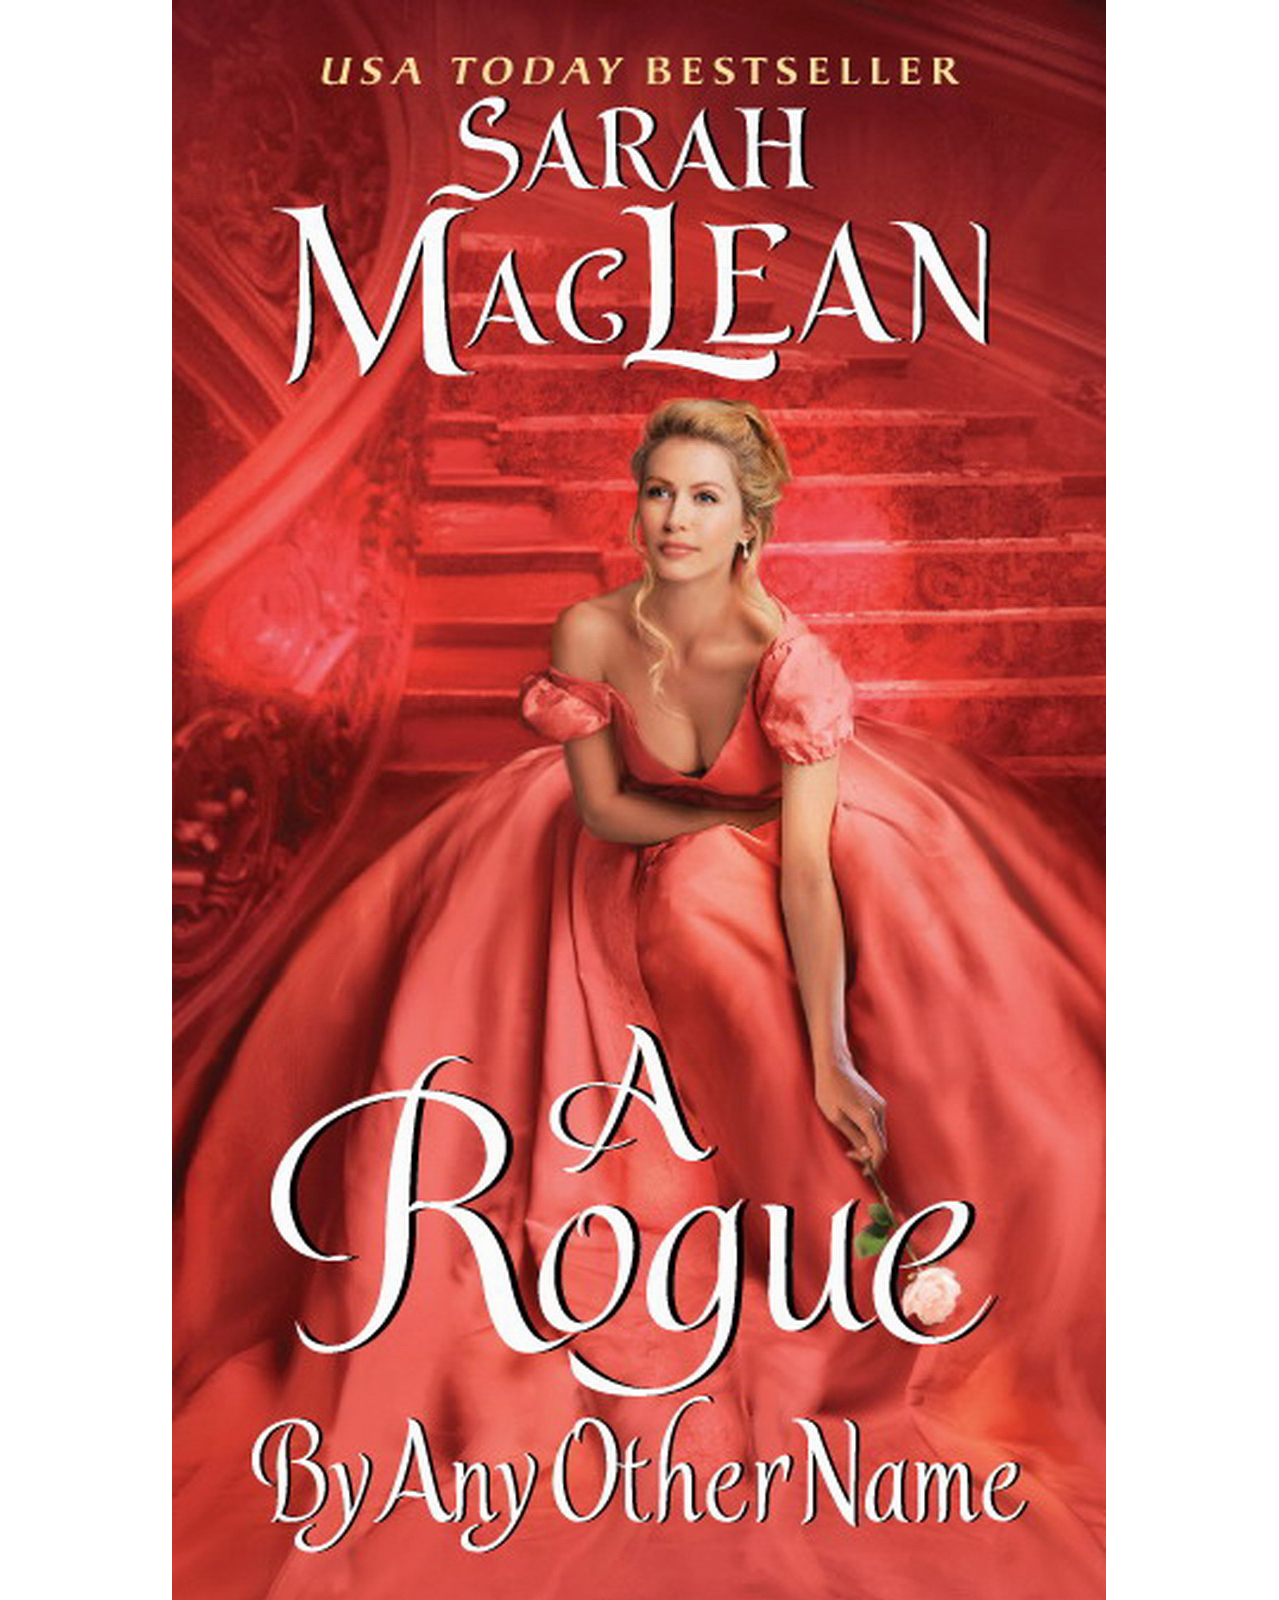 books-read-before-marriage-rogue-any-other-name-maclean-0115.jpg